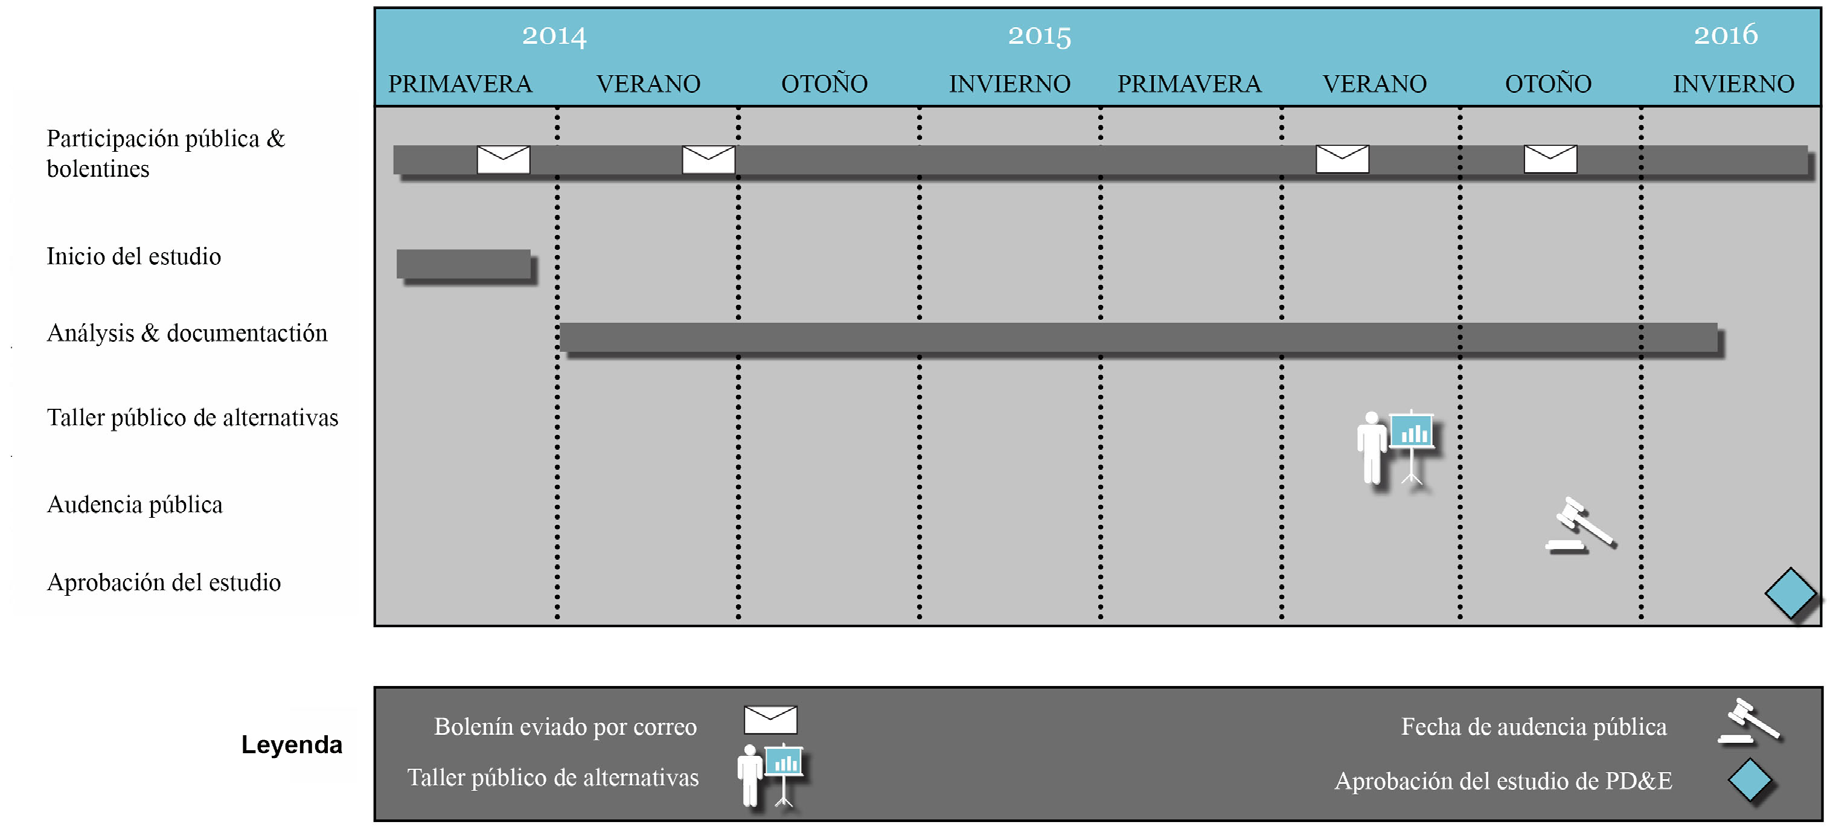 Project Schedule/Programación de Proyecto A Public Hearing tentatively scheduled for late fall 2015.